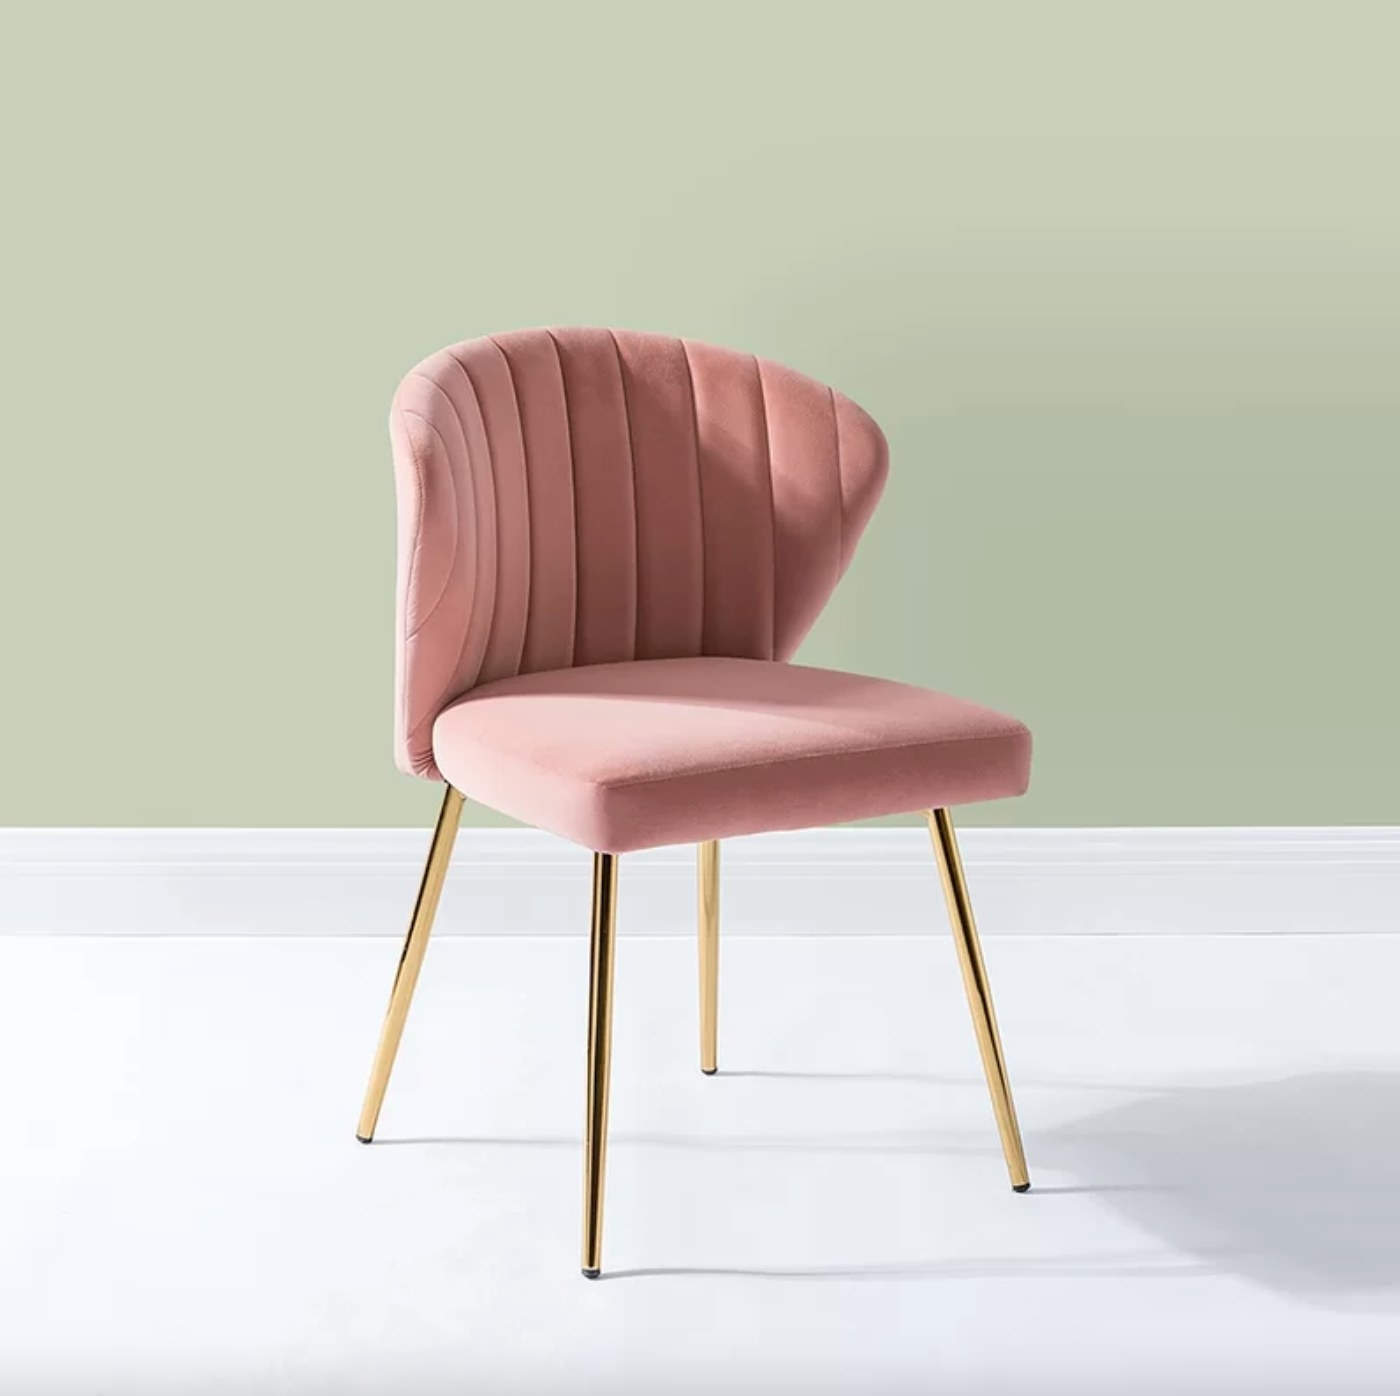 The velvet side chair in pink with bronze legs